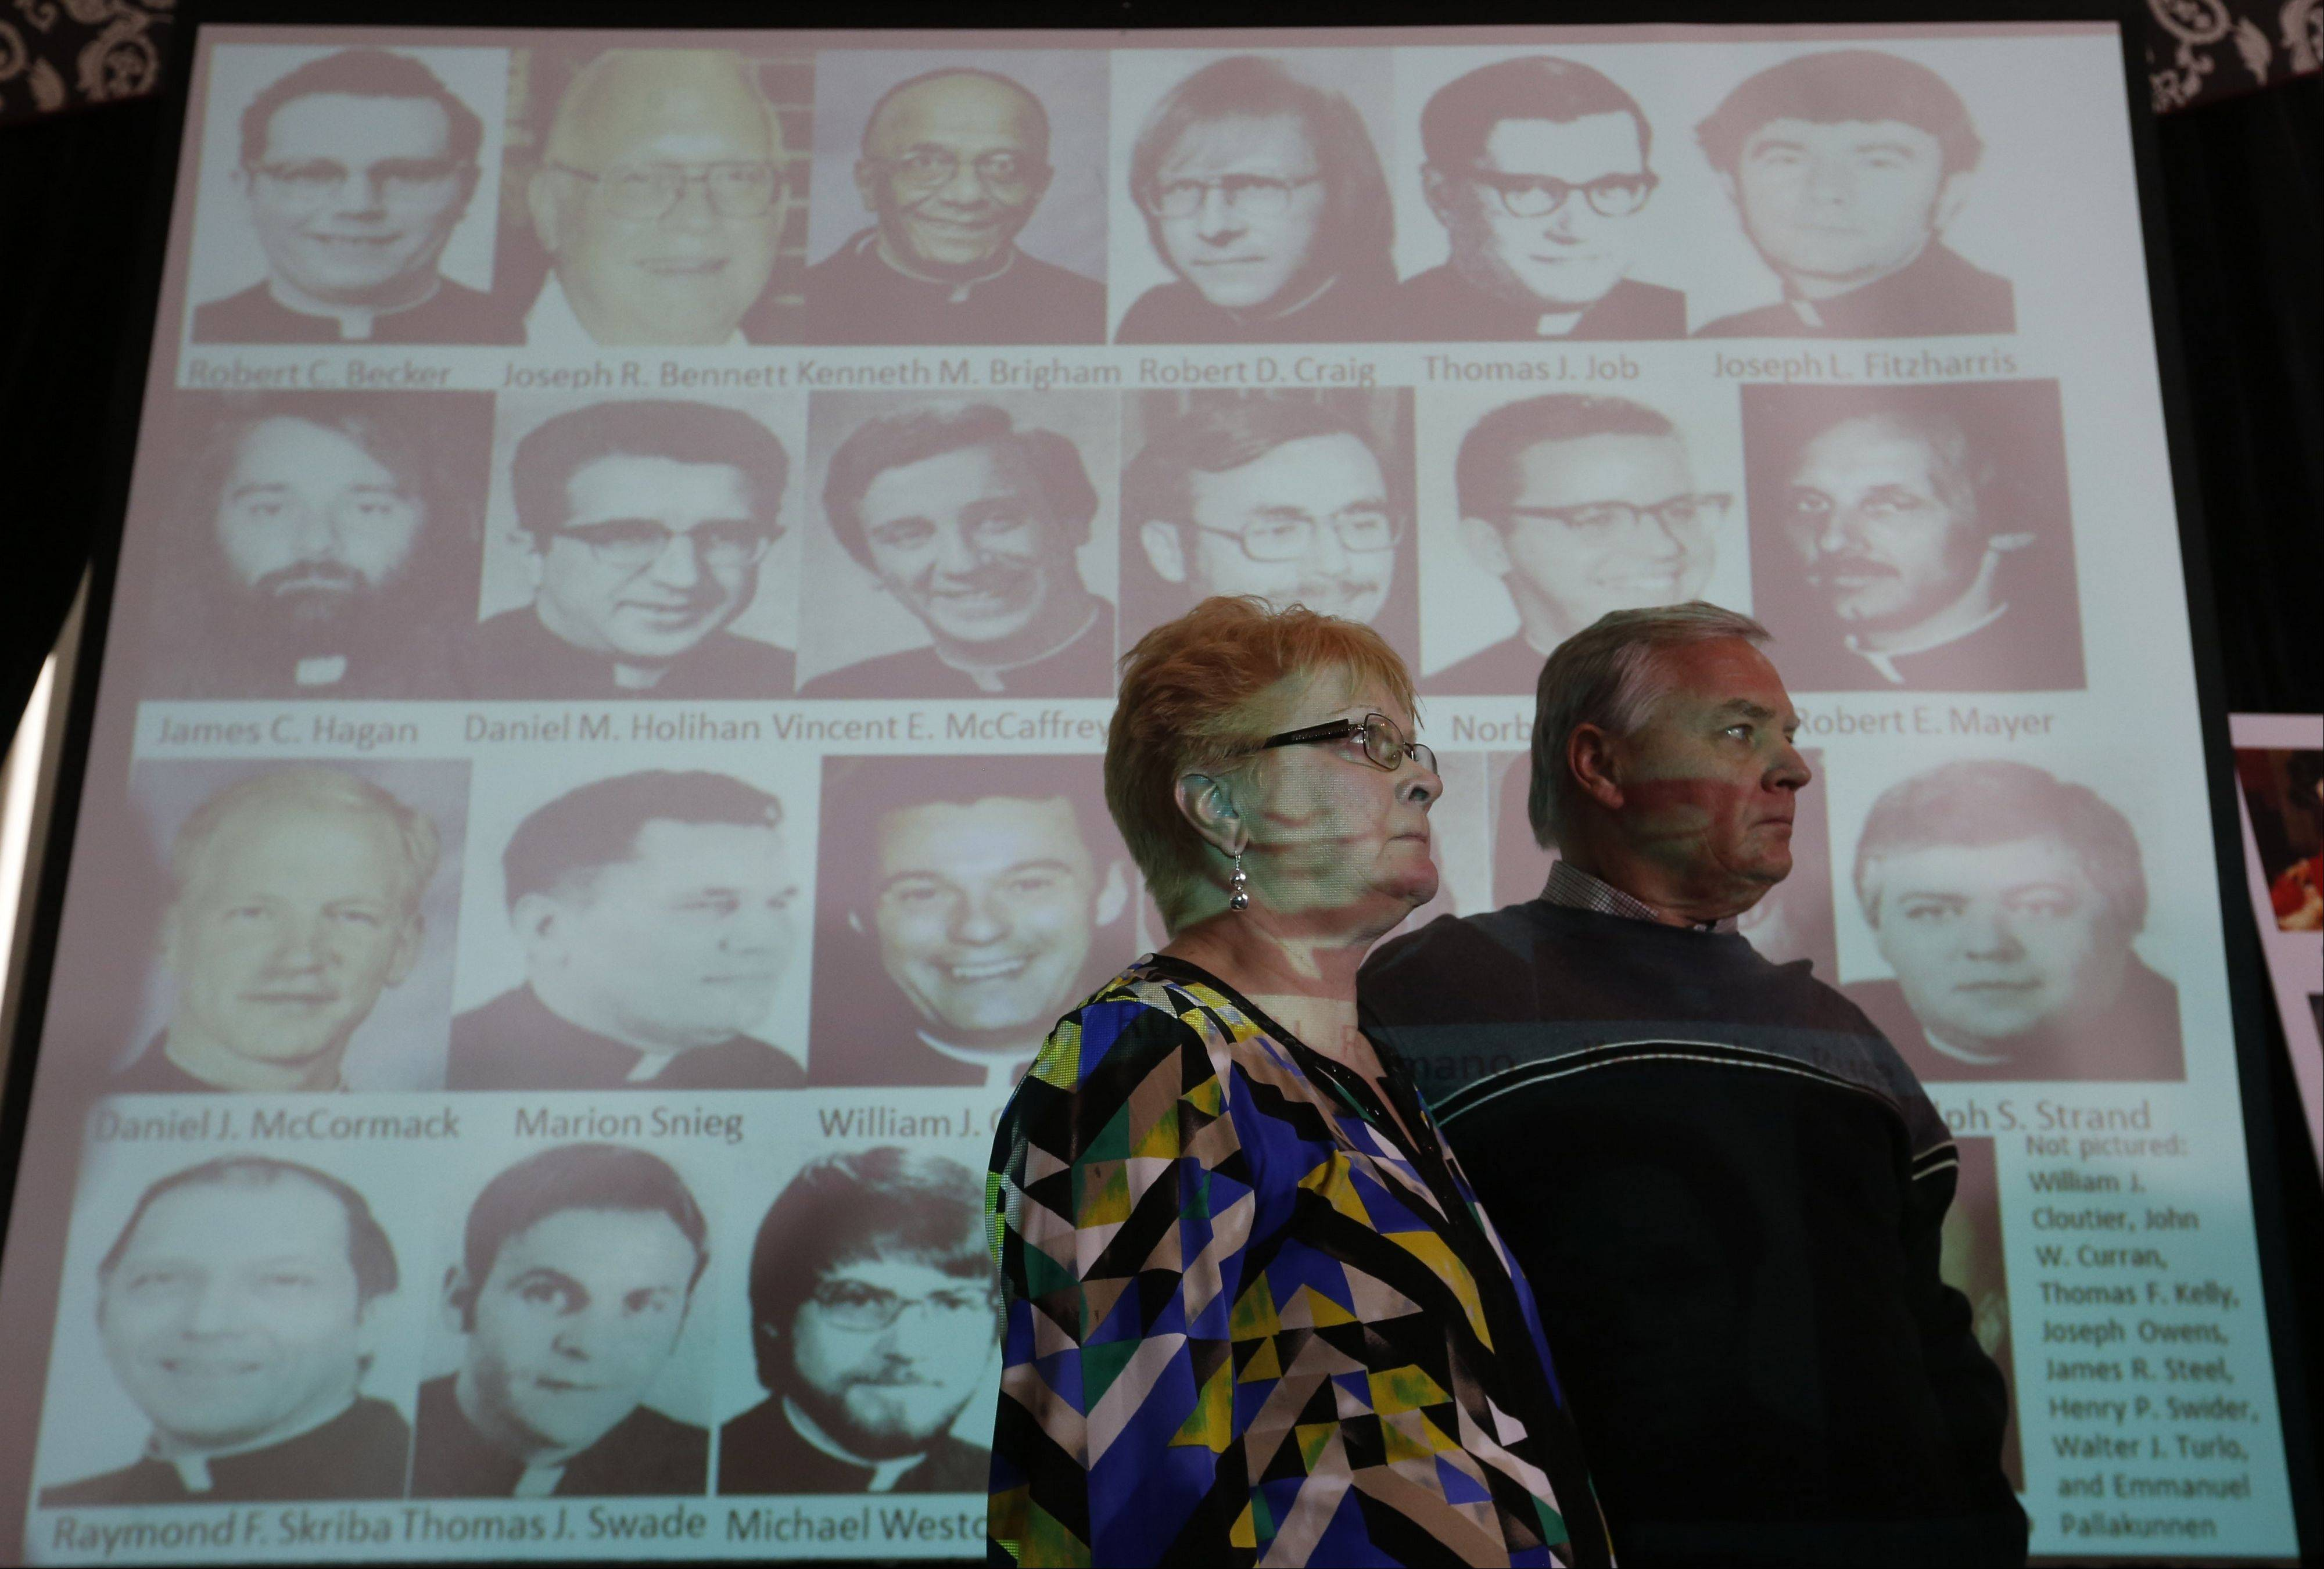 Kathy and Jim Laarveld, of Wheeling, whose son was sexually abused by a priest, stand before projected photos of some priests identified as abusers during a news conference Tuesday, where thousands of files were released about priests in the Archdiocese of Chicago sexually abusing minors.